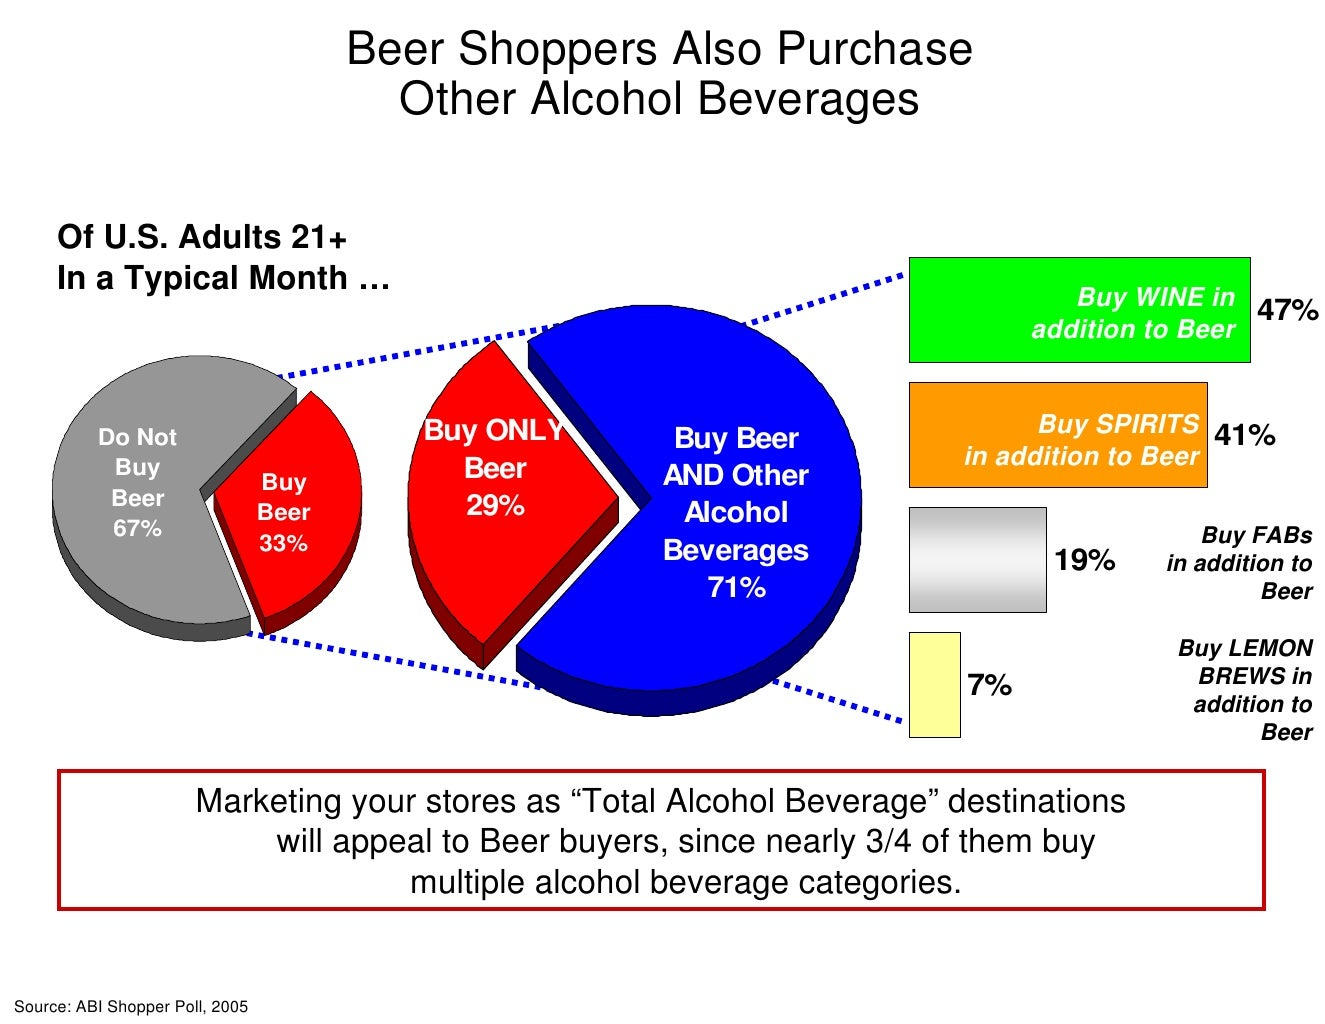 beer consumer insights Faded beer brand unhitches clydesdales in favor of fresher pitches to young  people  of sales declines by winning over young consumers, so can bud  and  144% a decade ago, according to beer marketer's insights.